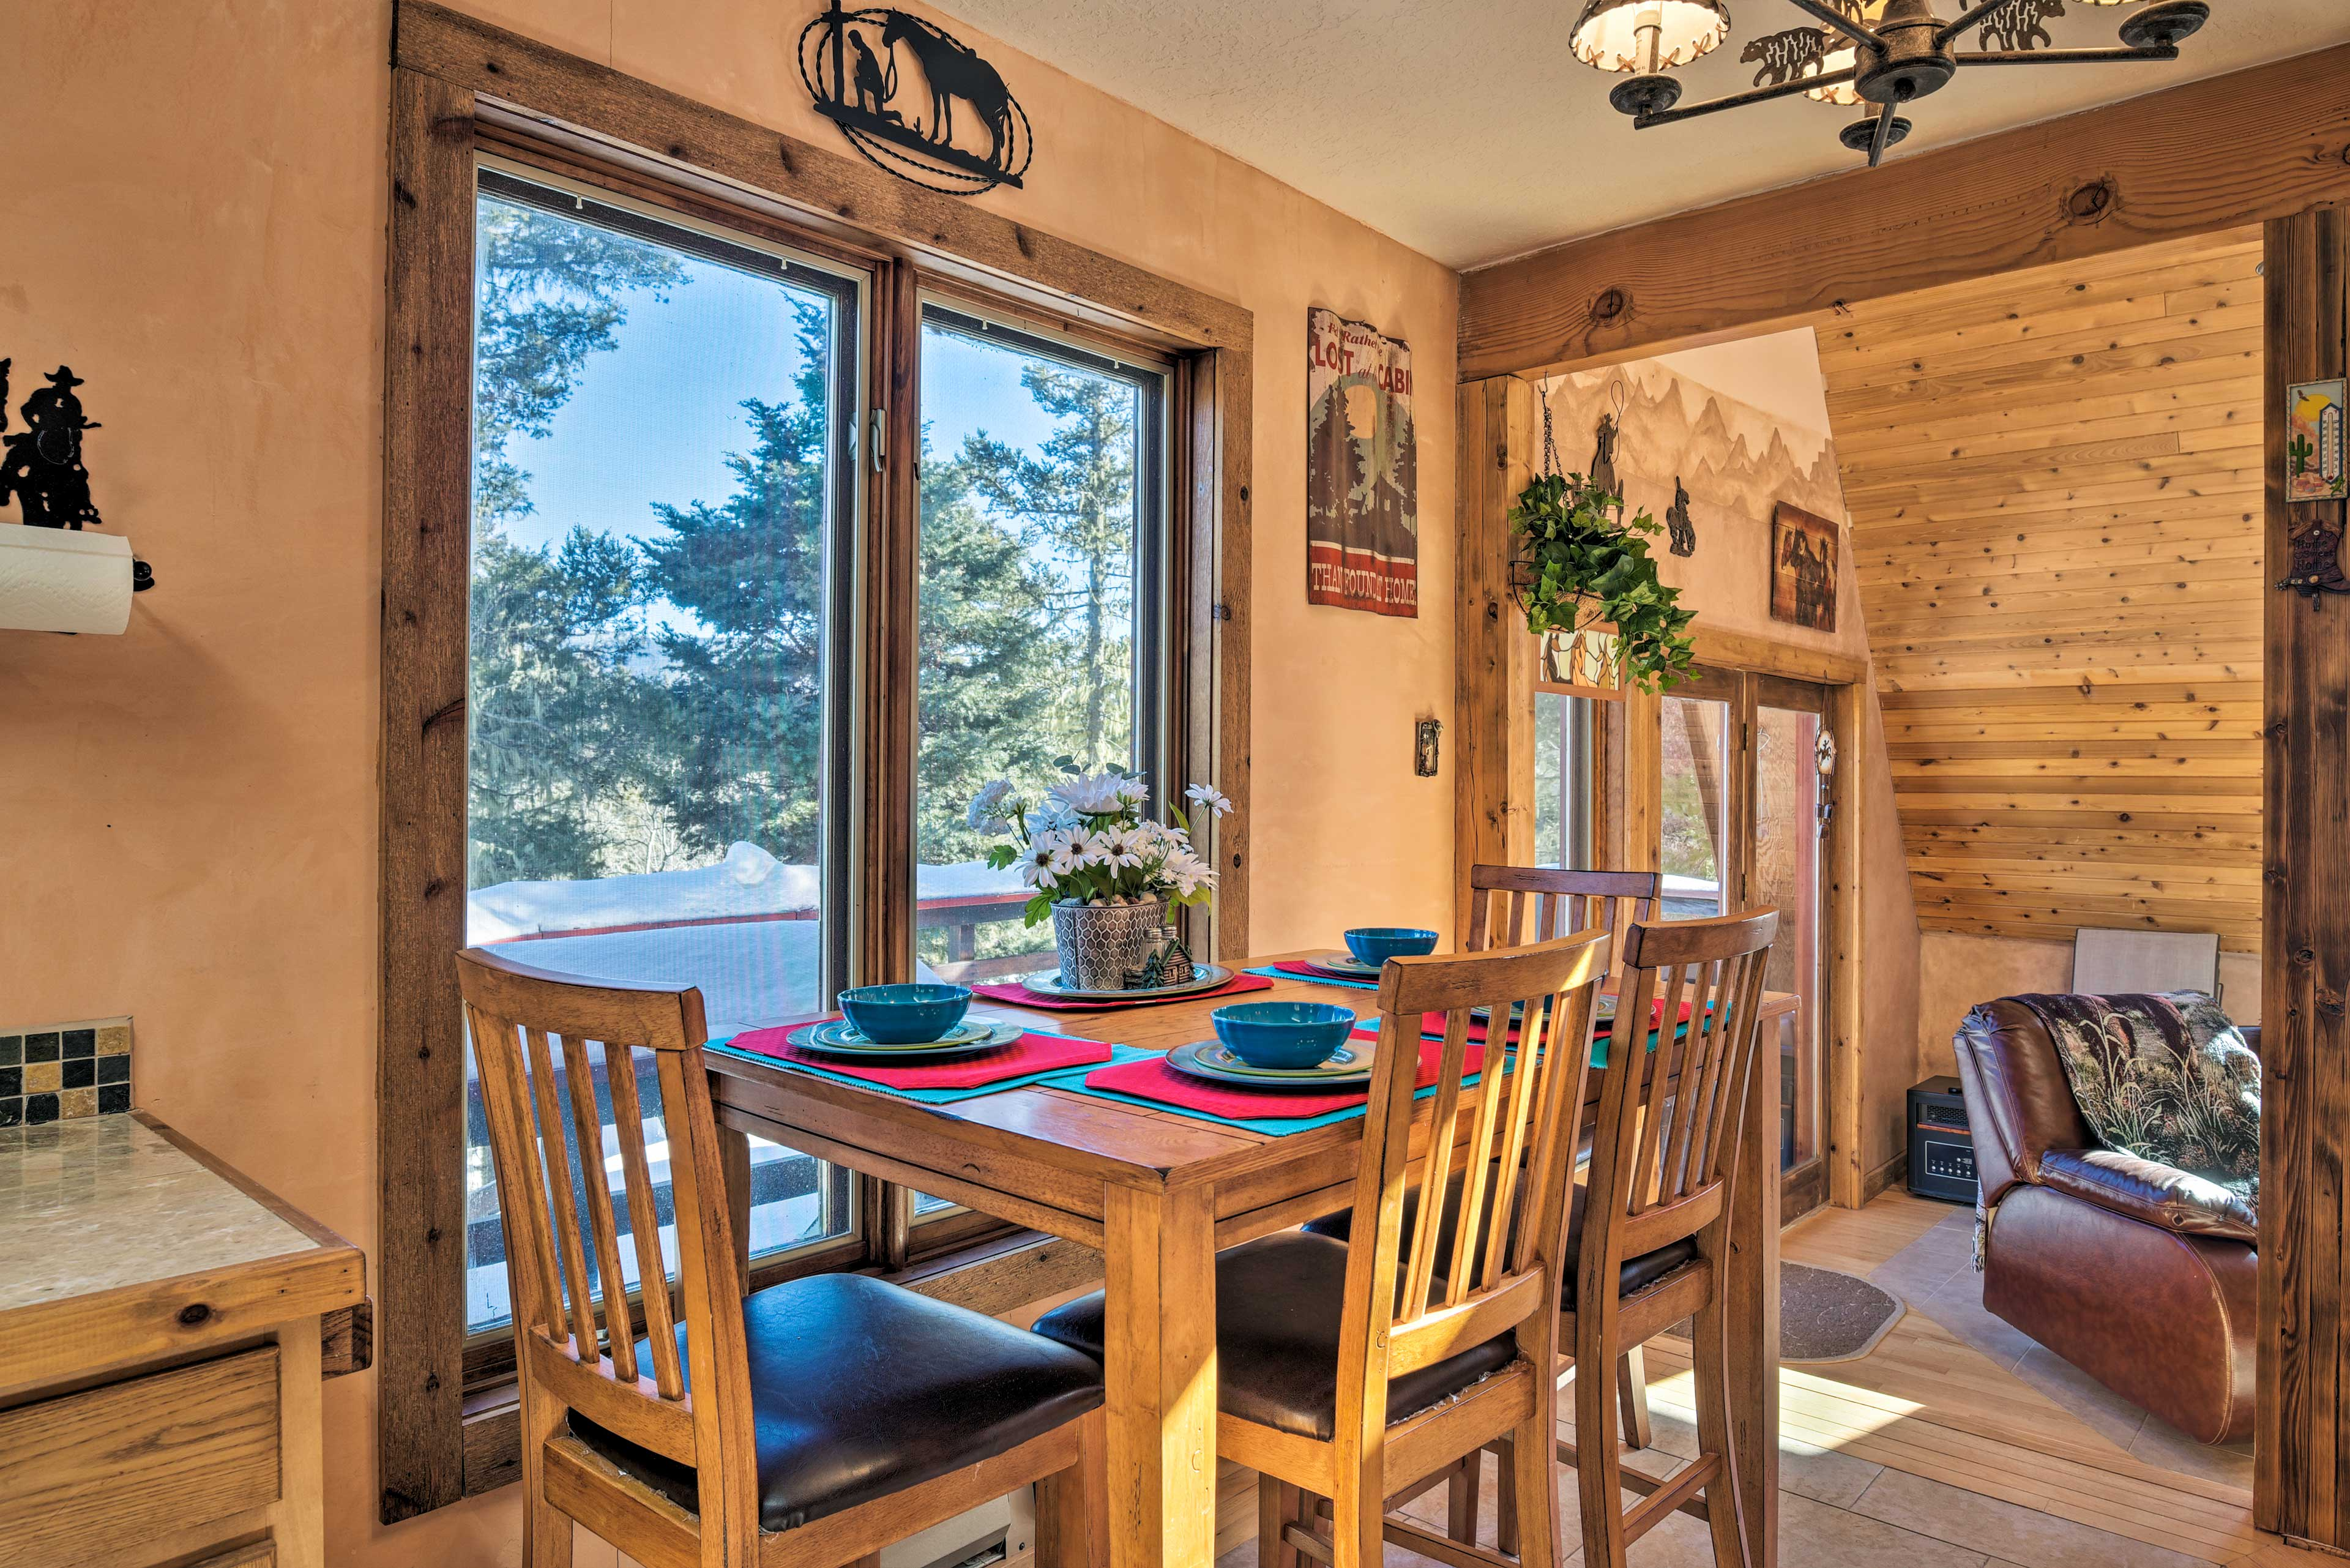 Pair your dinner with pine-tree views from this 4-seat kitchen table!